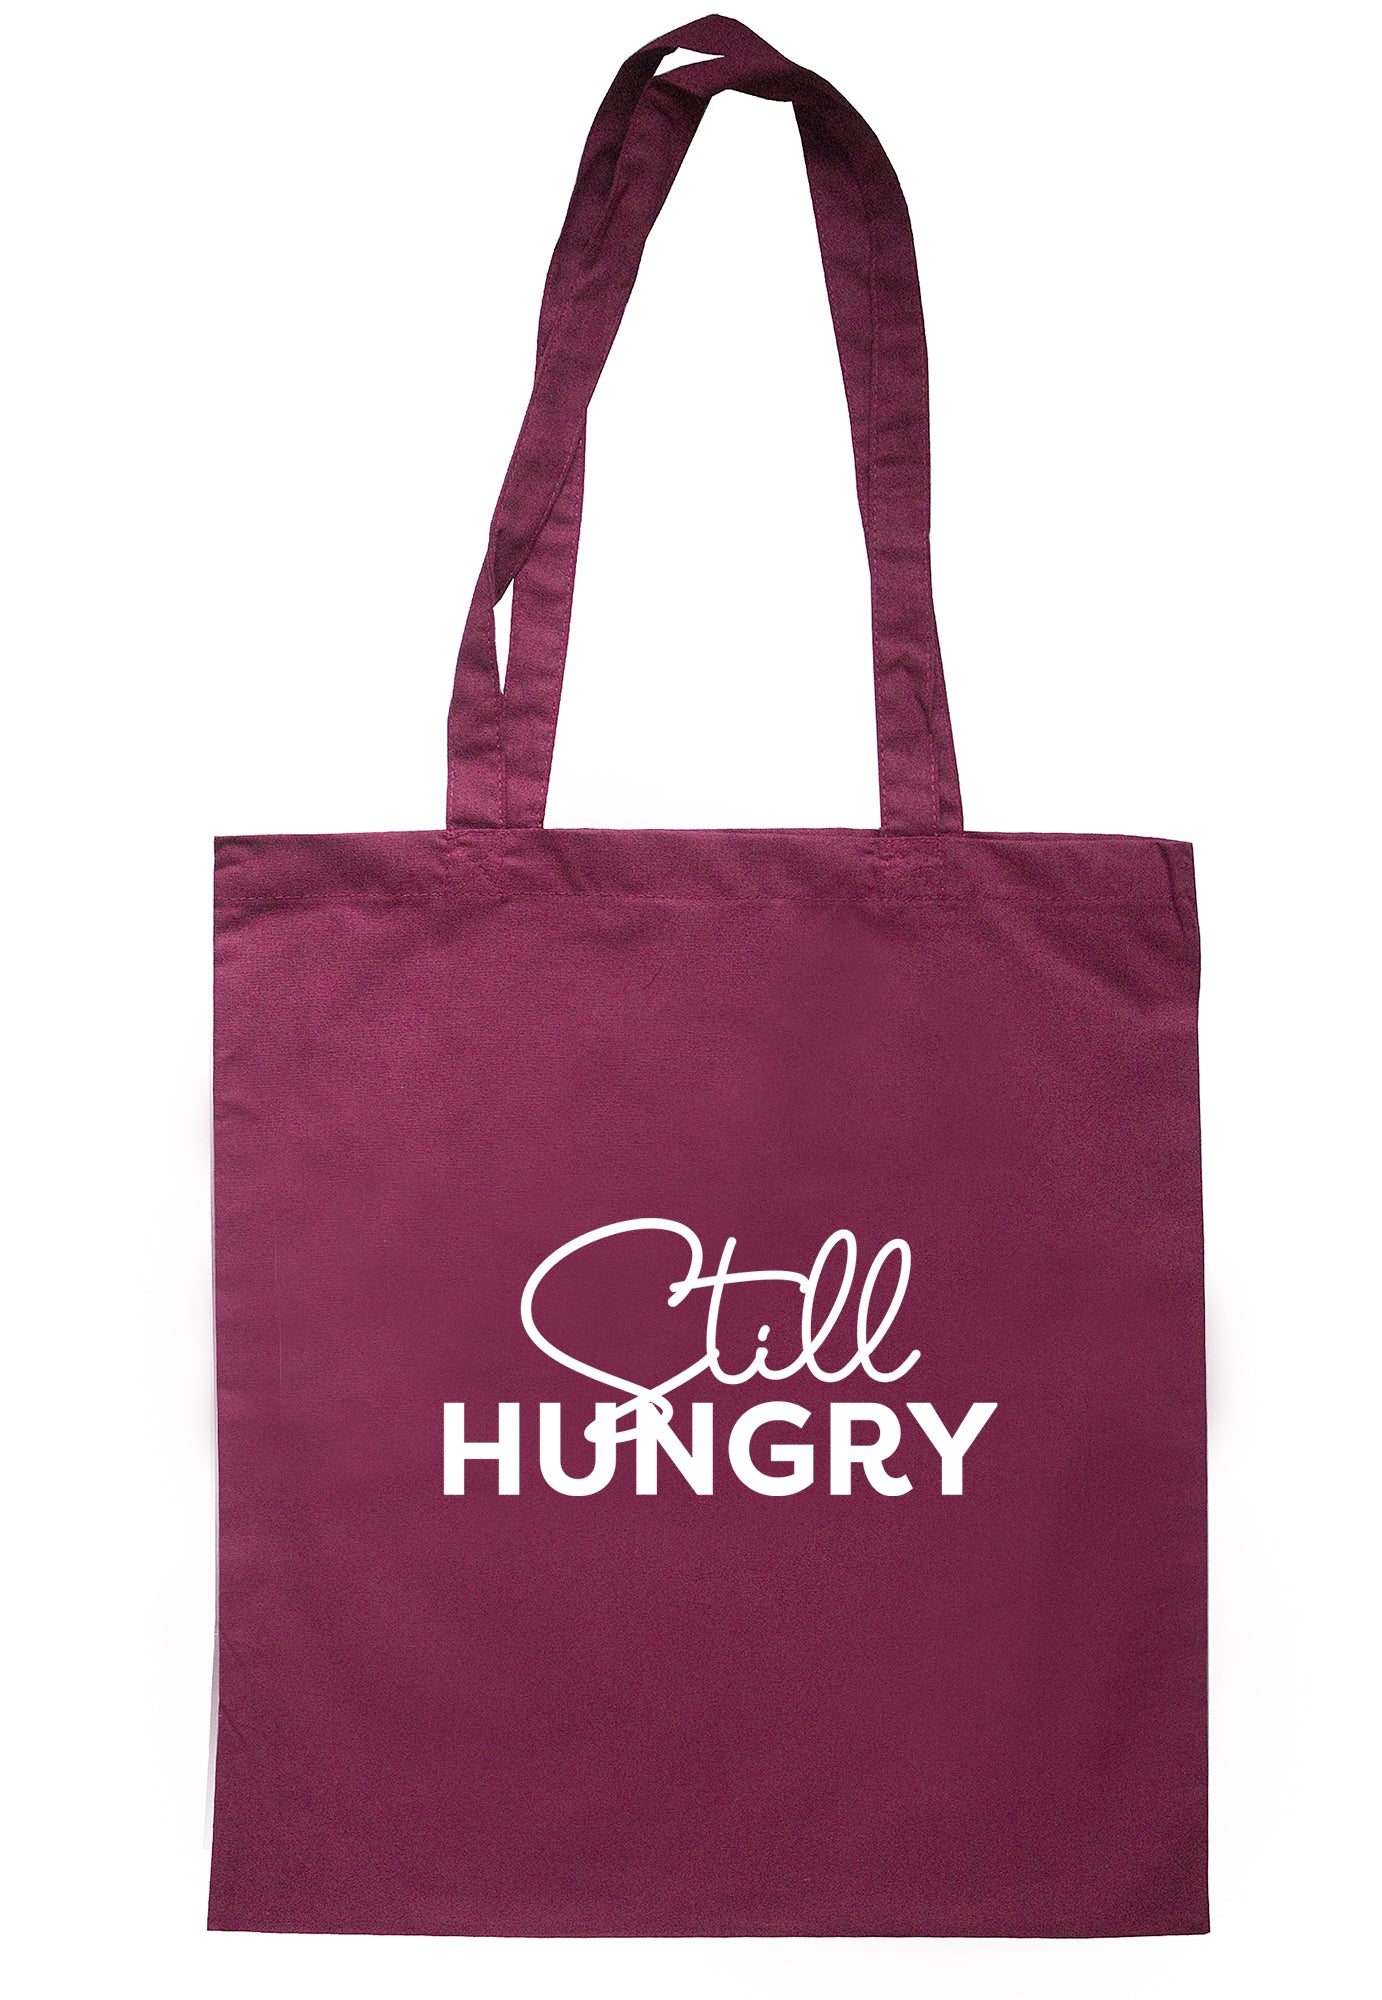 Still Hungry Tote Bag K2555 - Illustrated Identity Ltd.